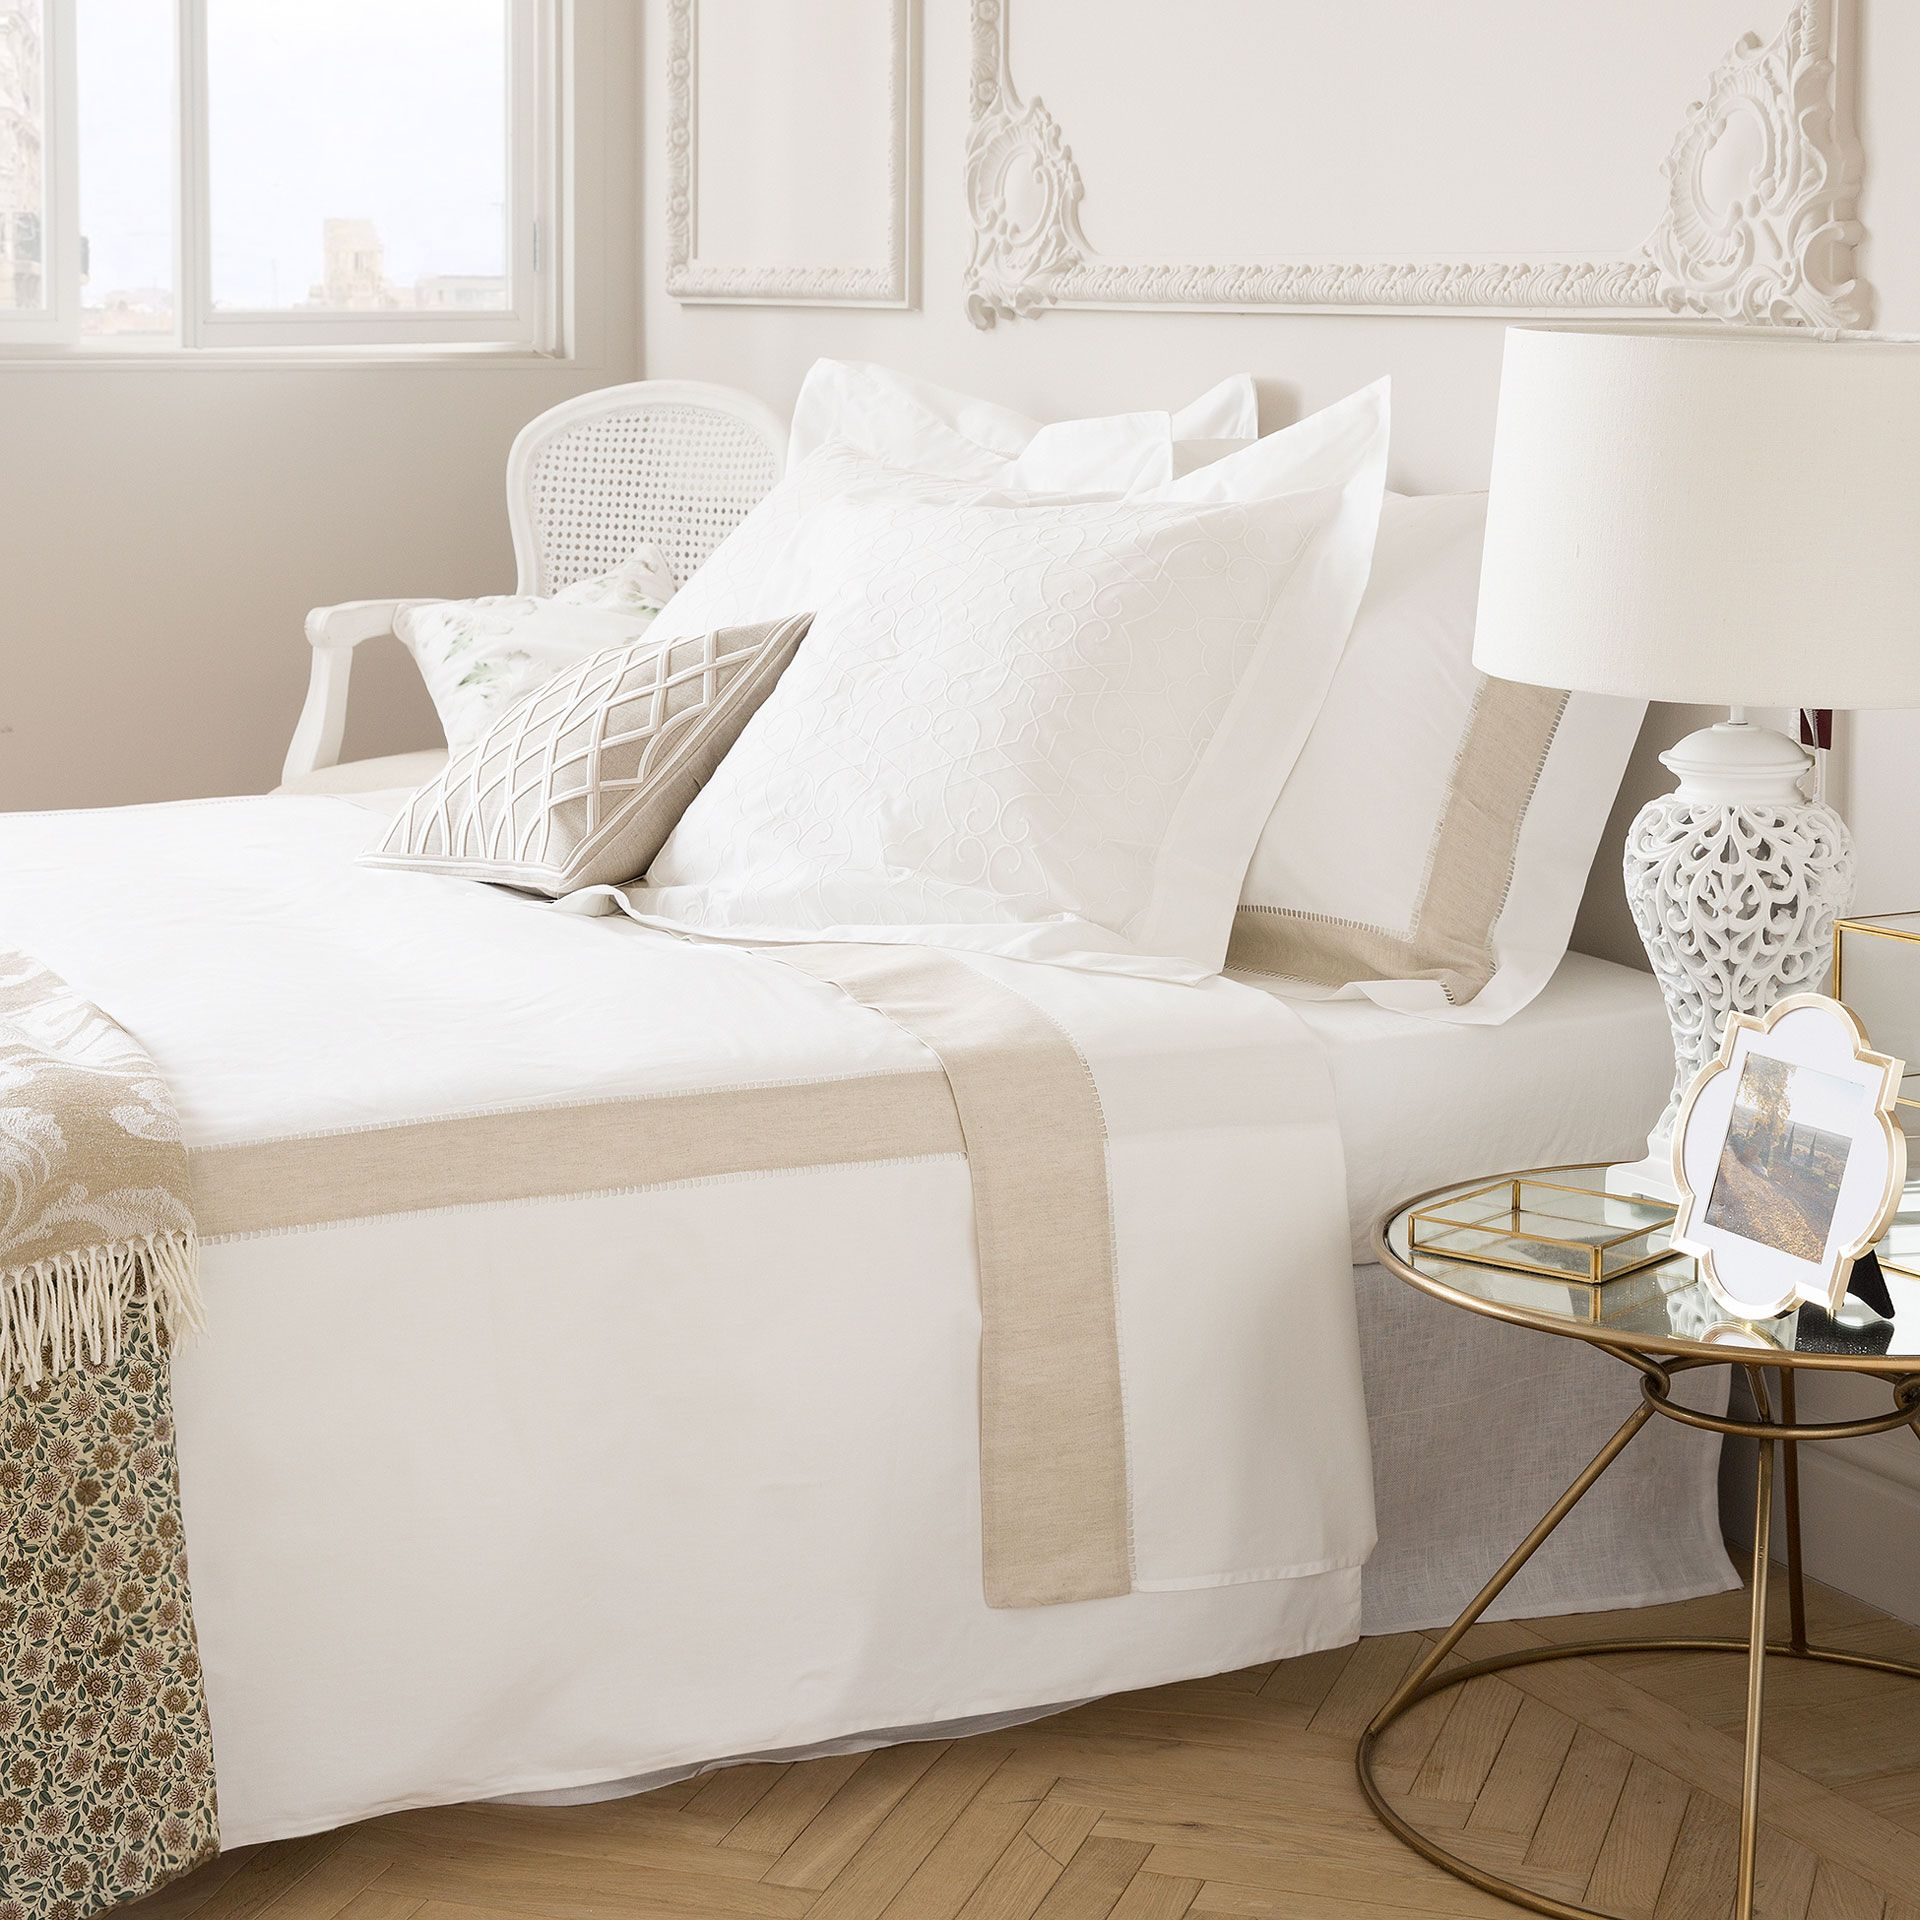 S banas y fundas contraste en lino bedrooms linens and - Fundas almohadas zara home ...